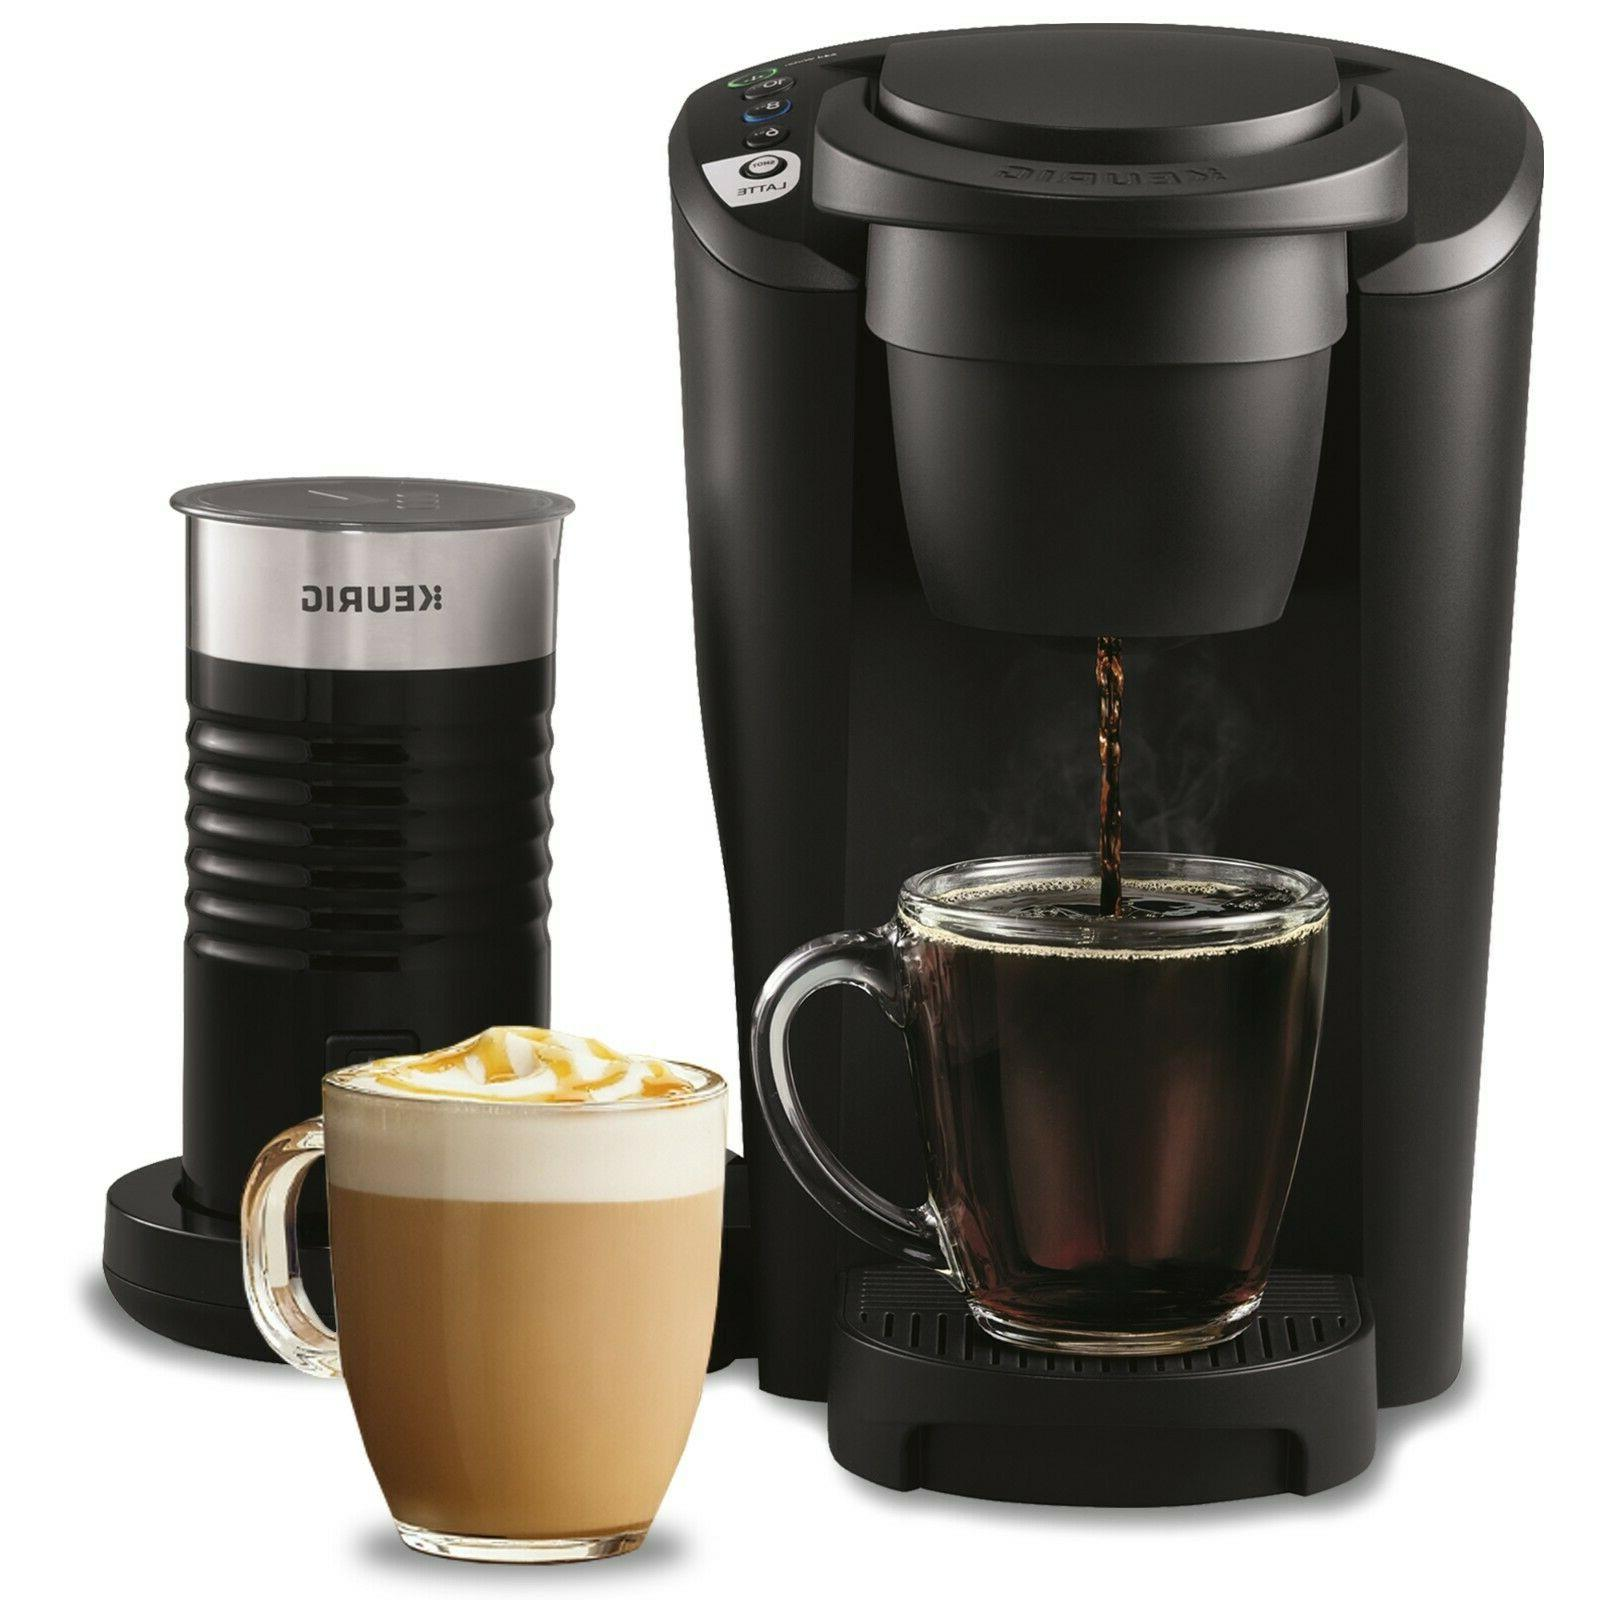 Keurig K-Latte Coffee Maker with Milk Frother, Single Serve